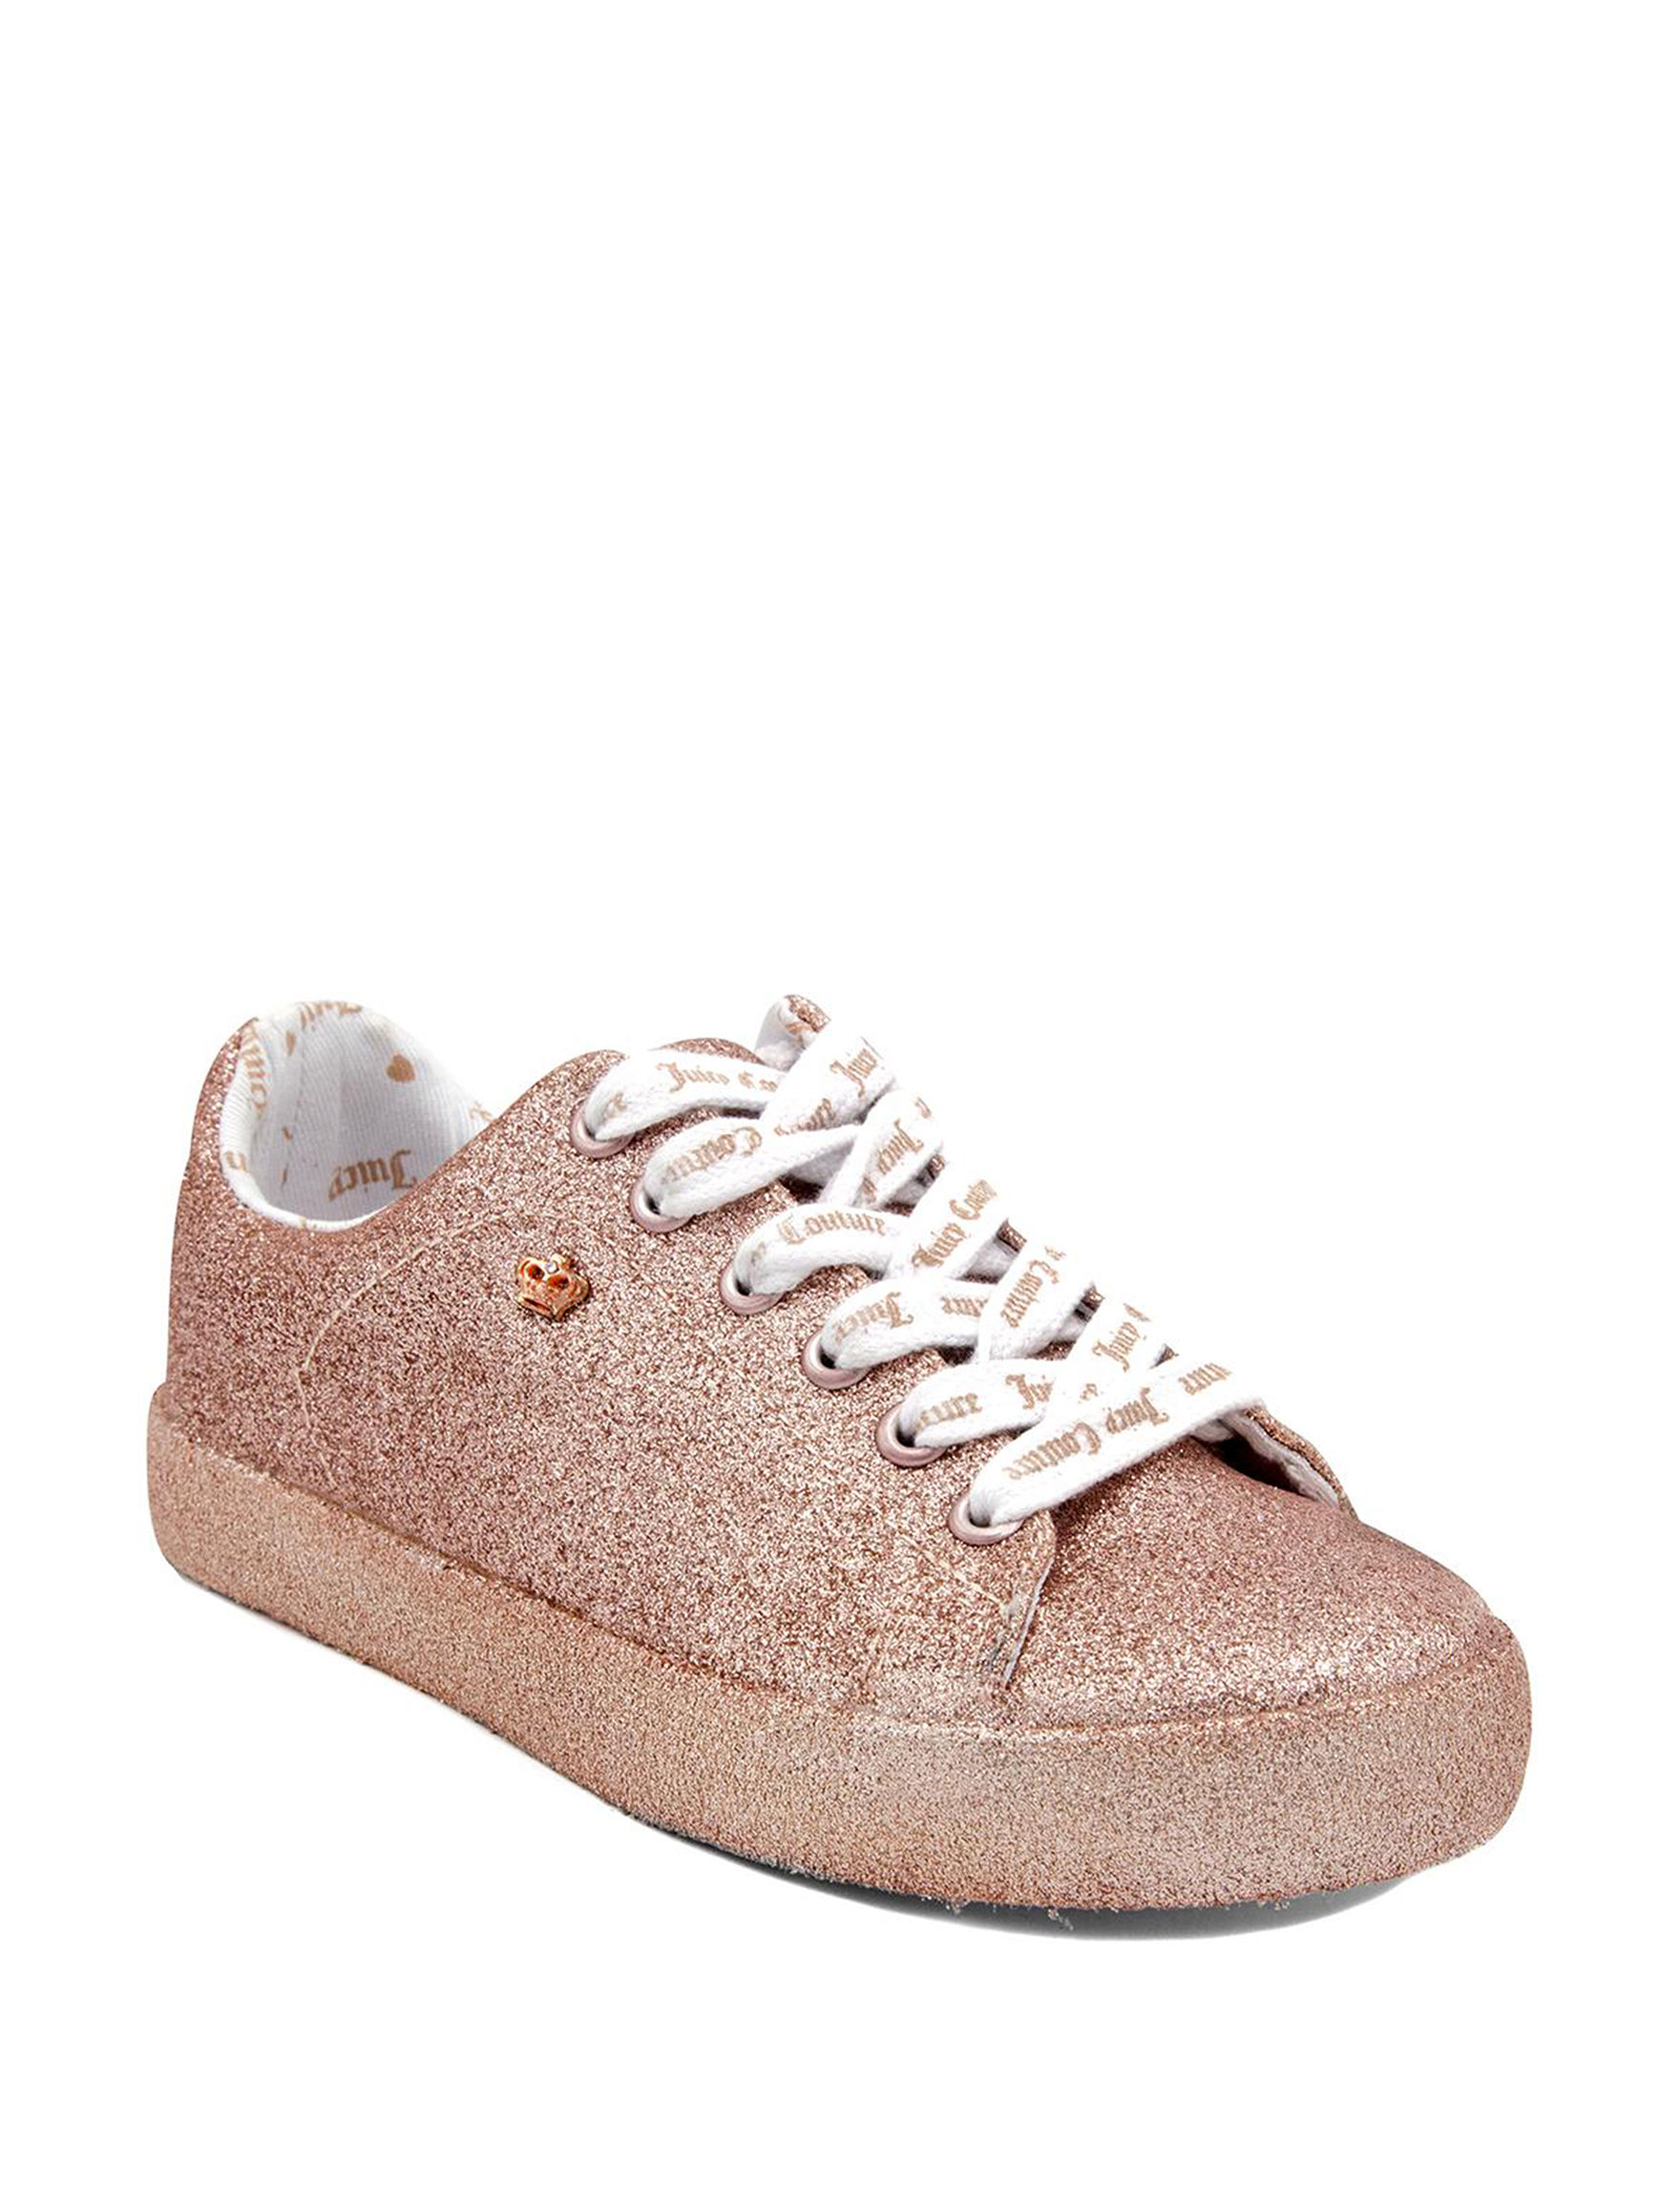 Juicy Couture Rose Gold